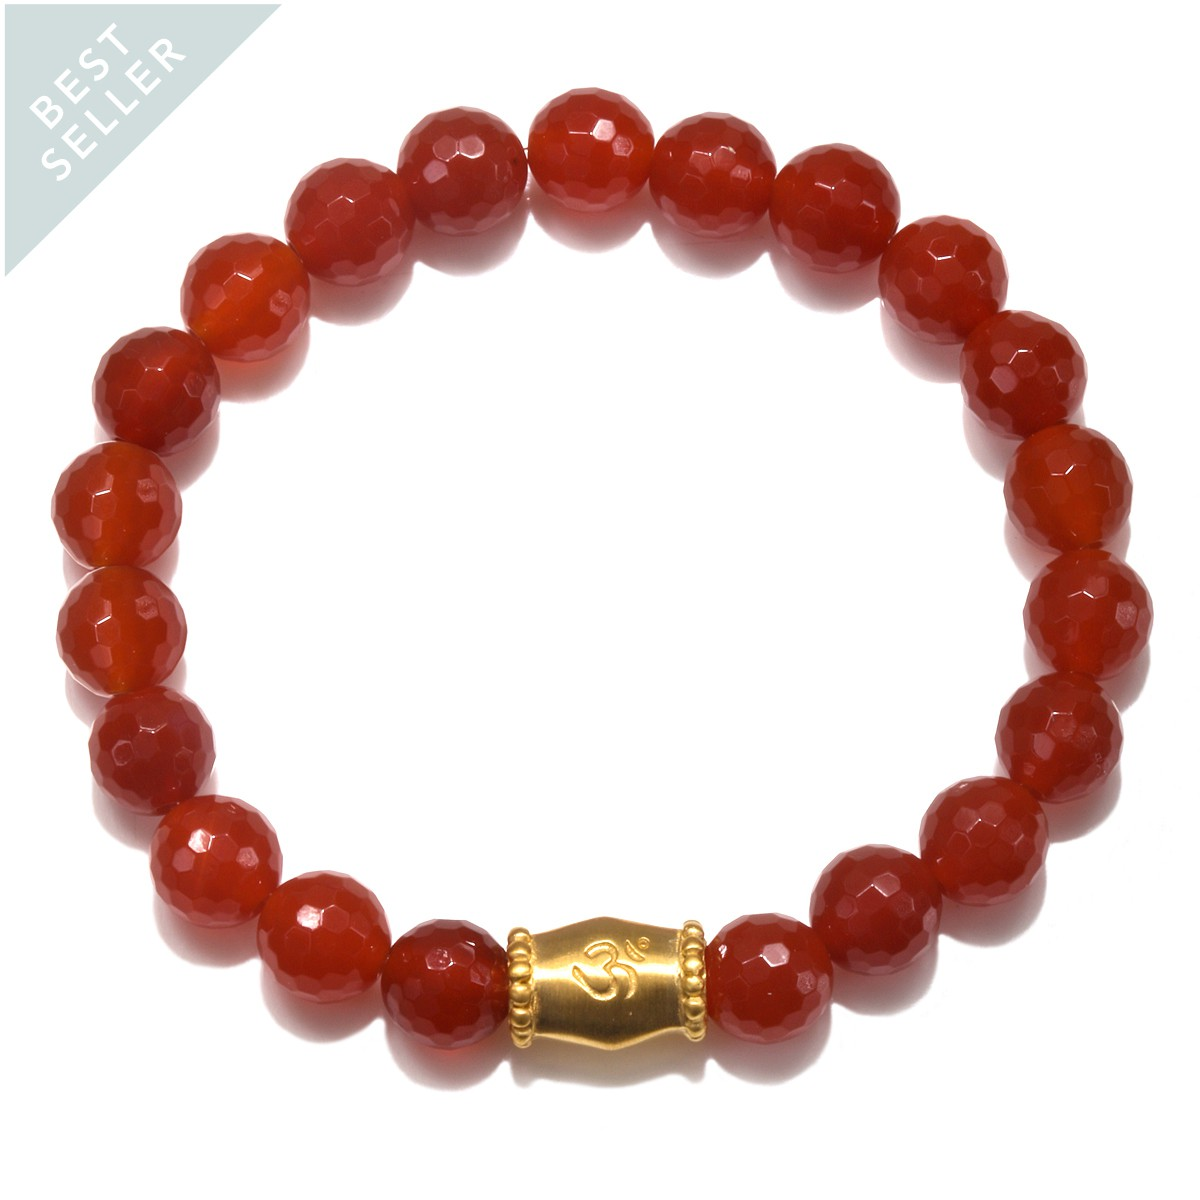 Satya Resonance Carnelian OM Bracelet